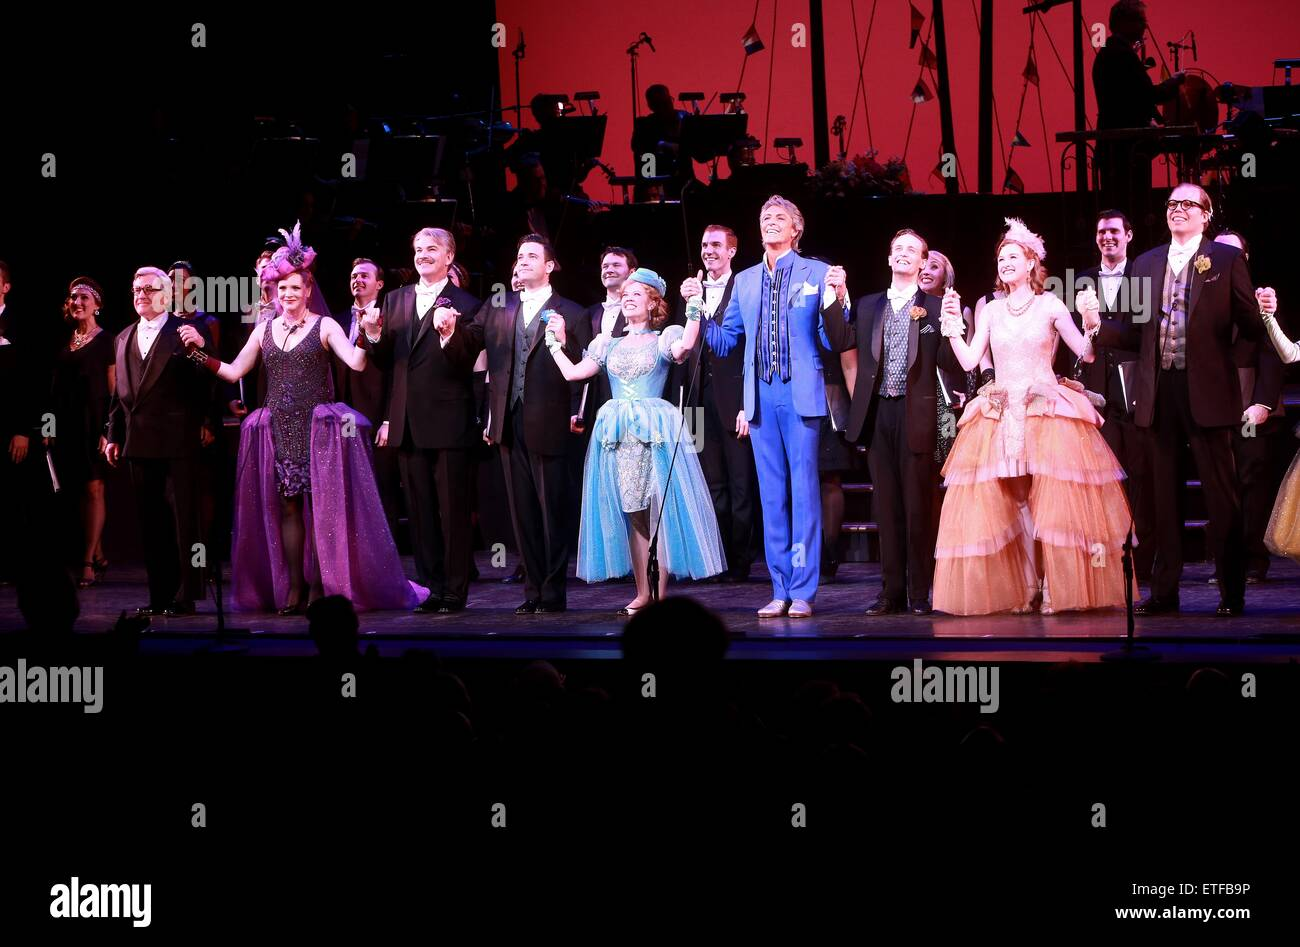 Closing night curtain call for Encores! production of Lady Be Good at NY City Center.  Featuring: Richard Poe, Jennifer - Stock Image